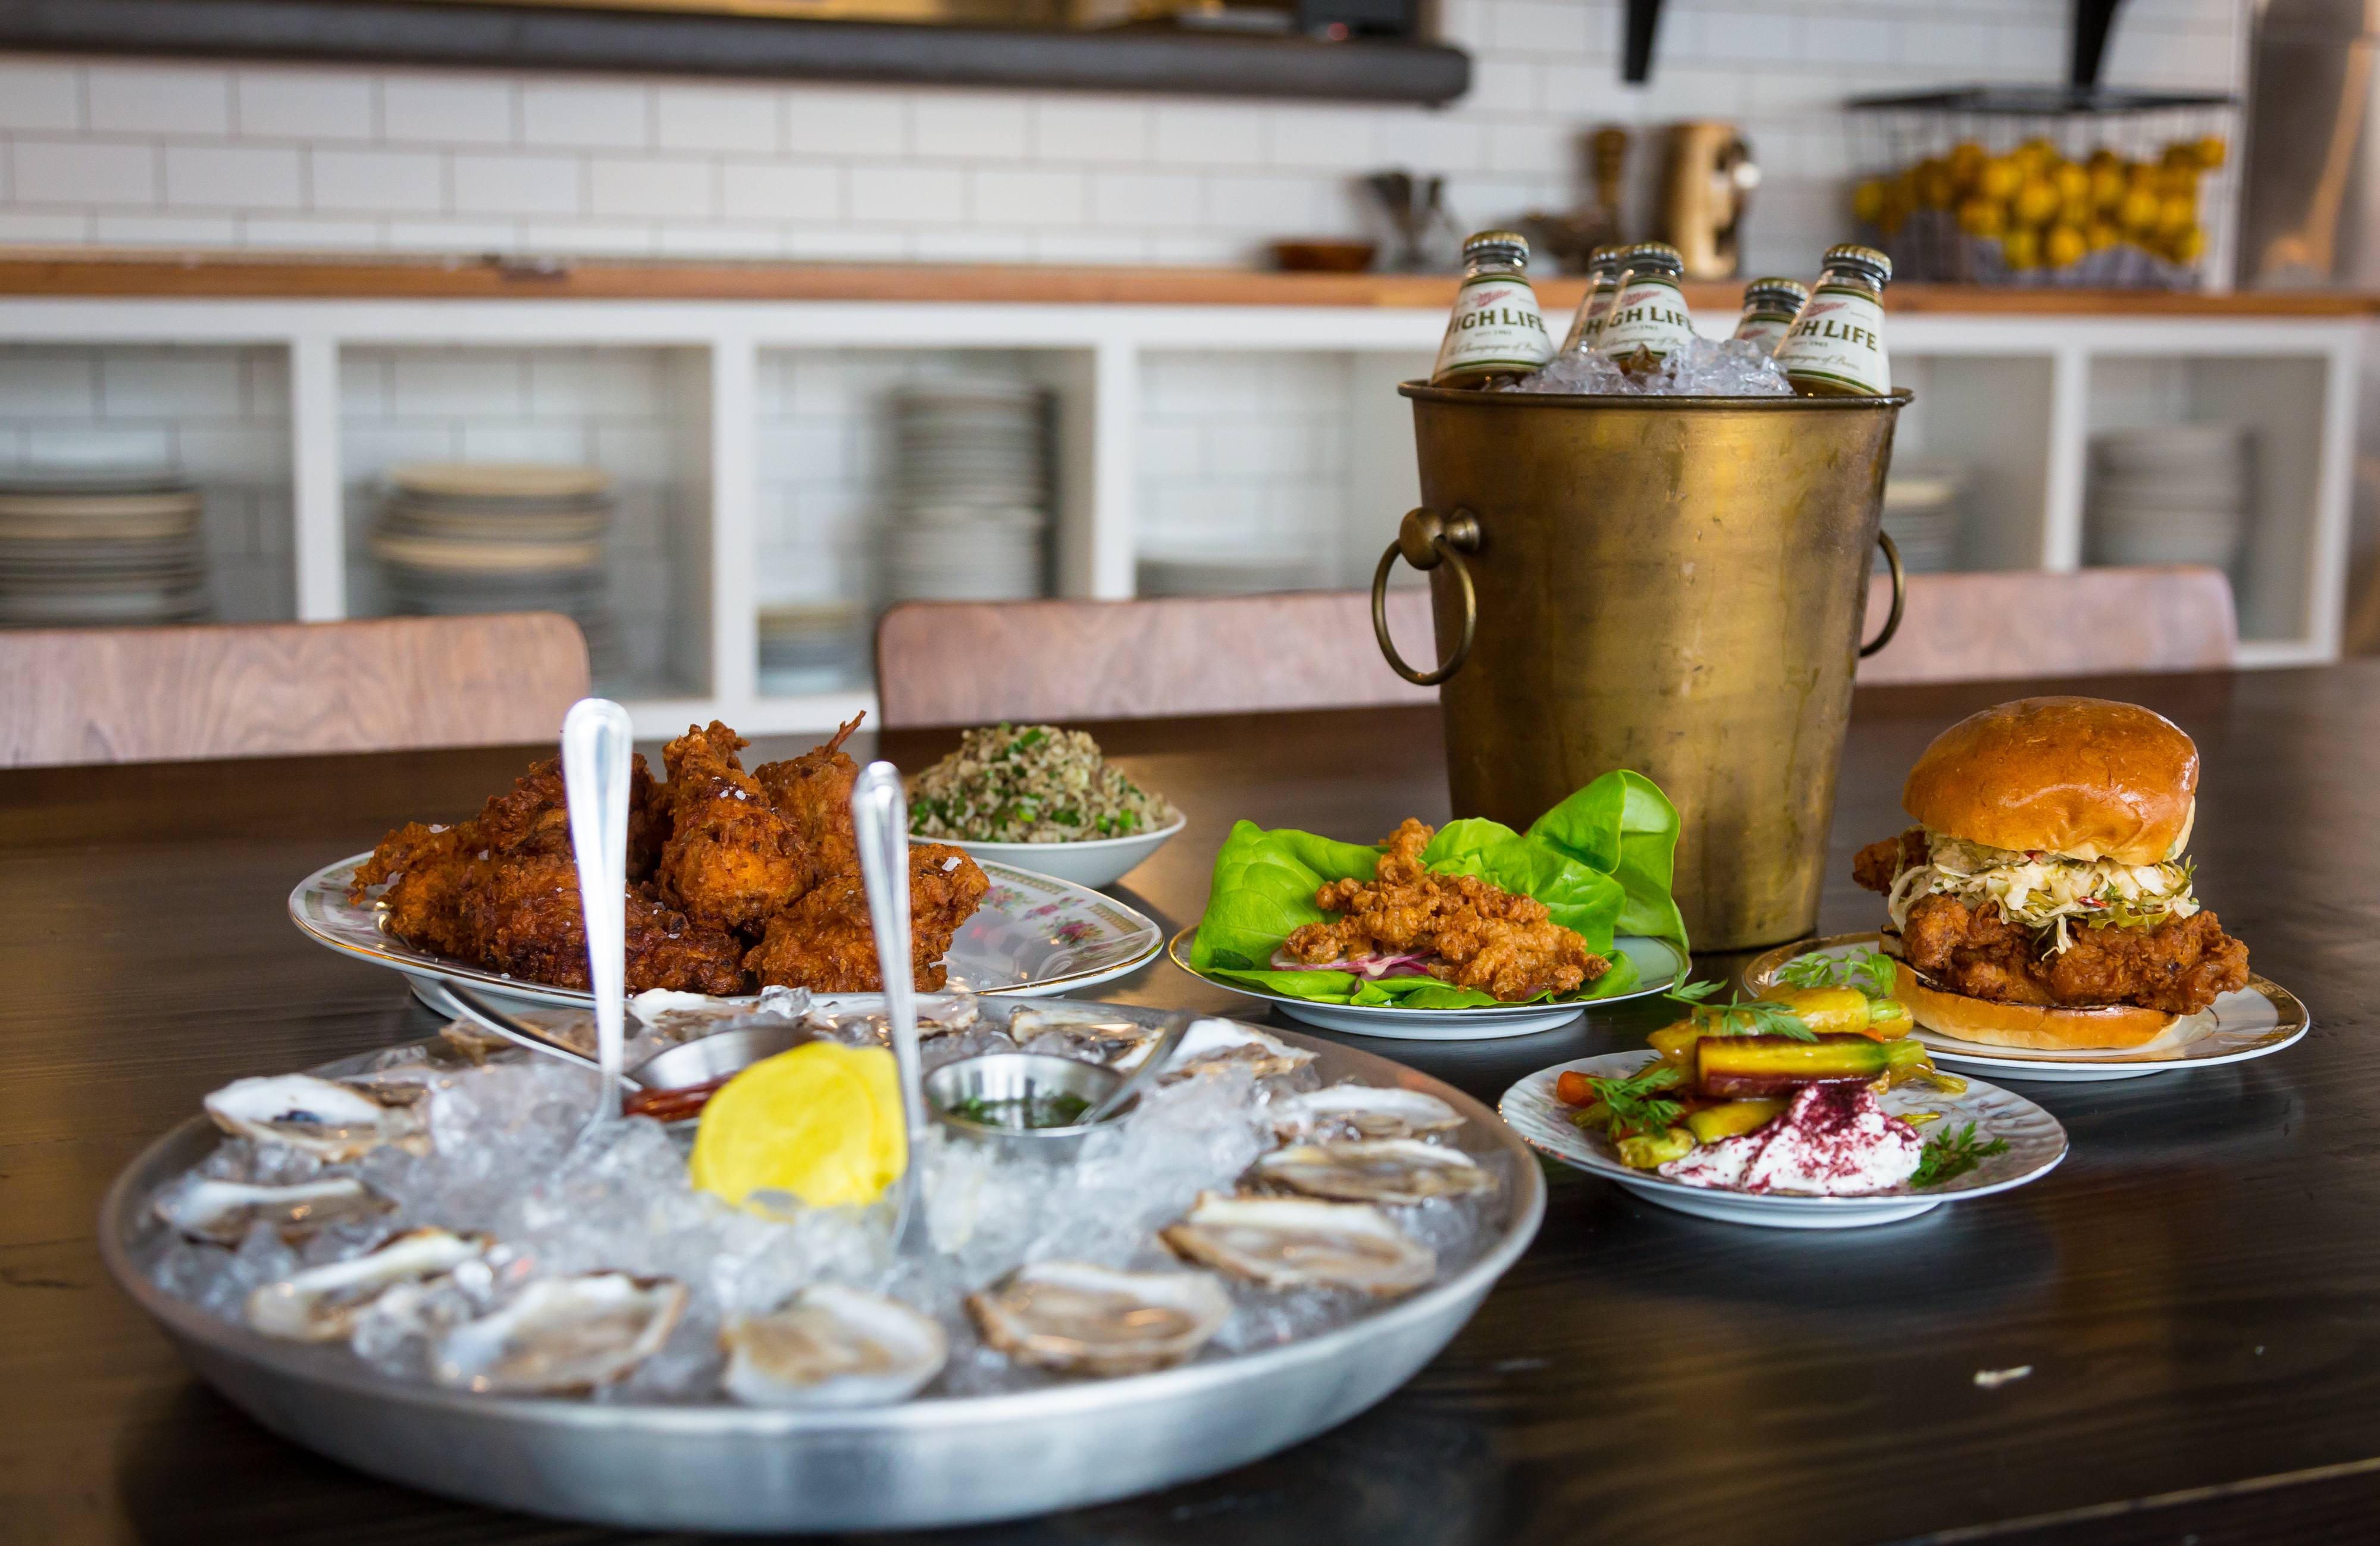 Mary Hoopa's House of Fried Chicken & Oysters